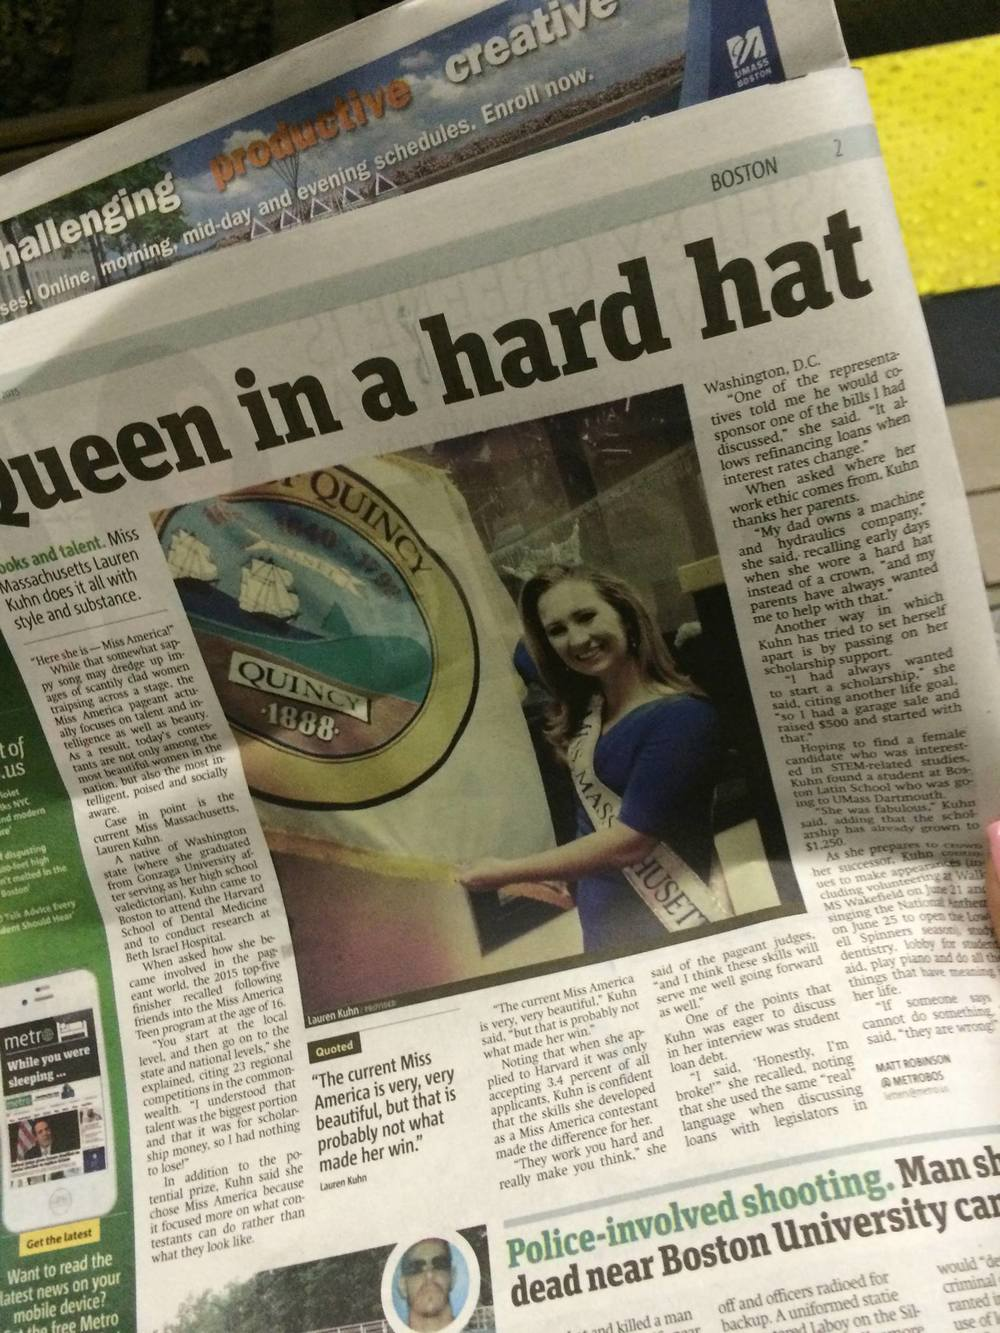 Boston Metro - Front Page Lauren Kuhn, Queen in a hard hat!  June 2015